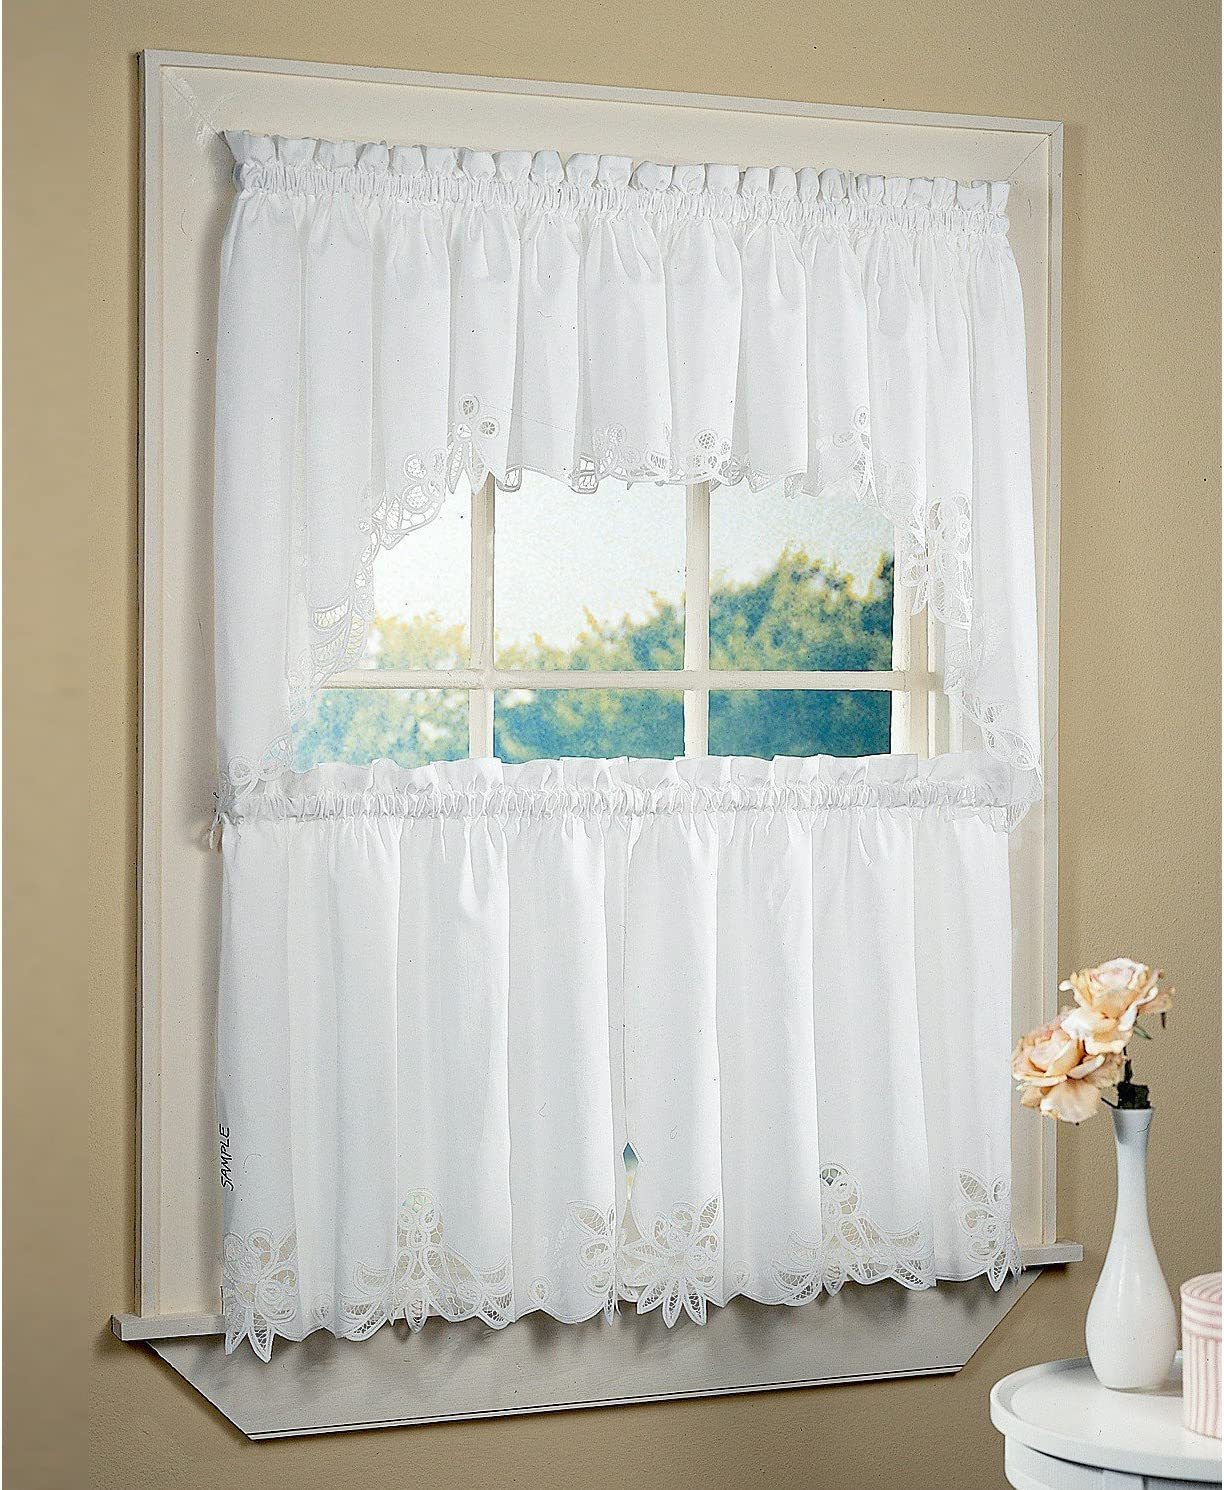 Amazon Com Fancy Collection 3pc Off White Beige With Embroidered Kitchen Cafe Curtain Tier And Swag Set Battenburg New 60 X 38 Ercu Dining